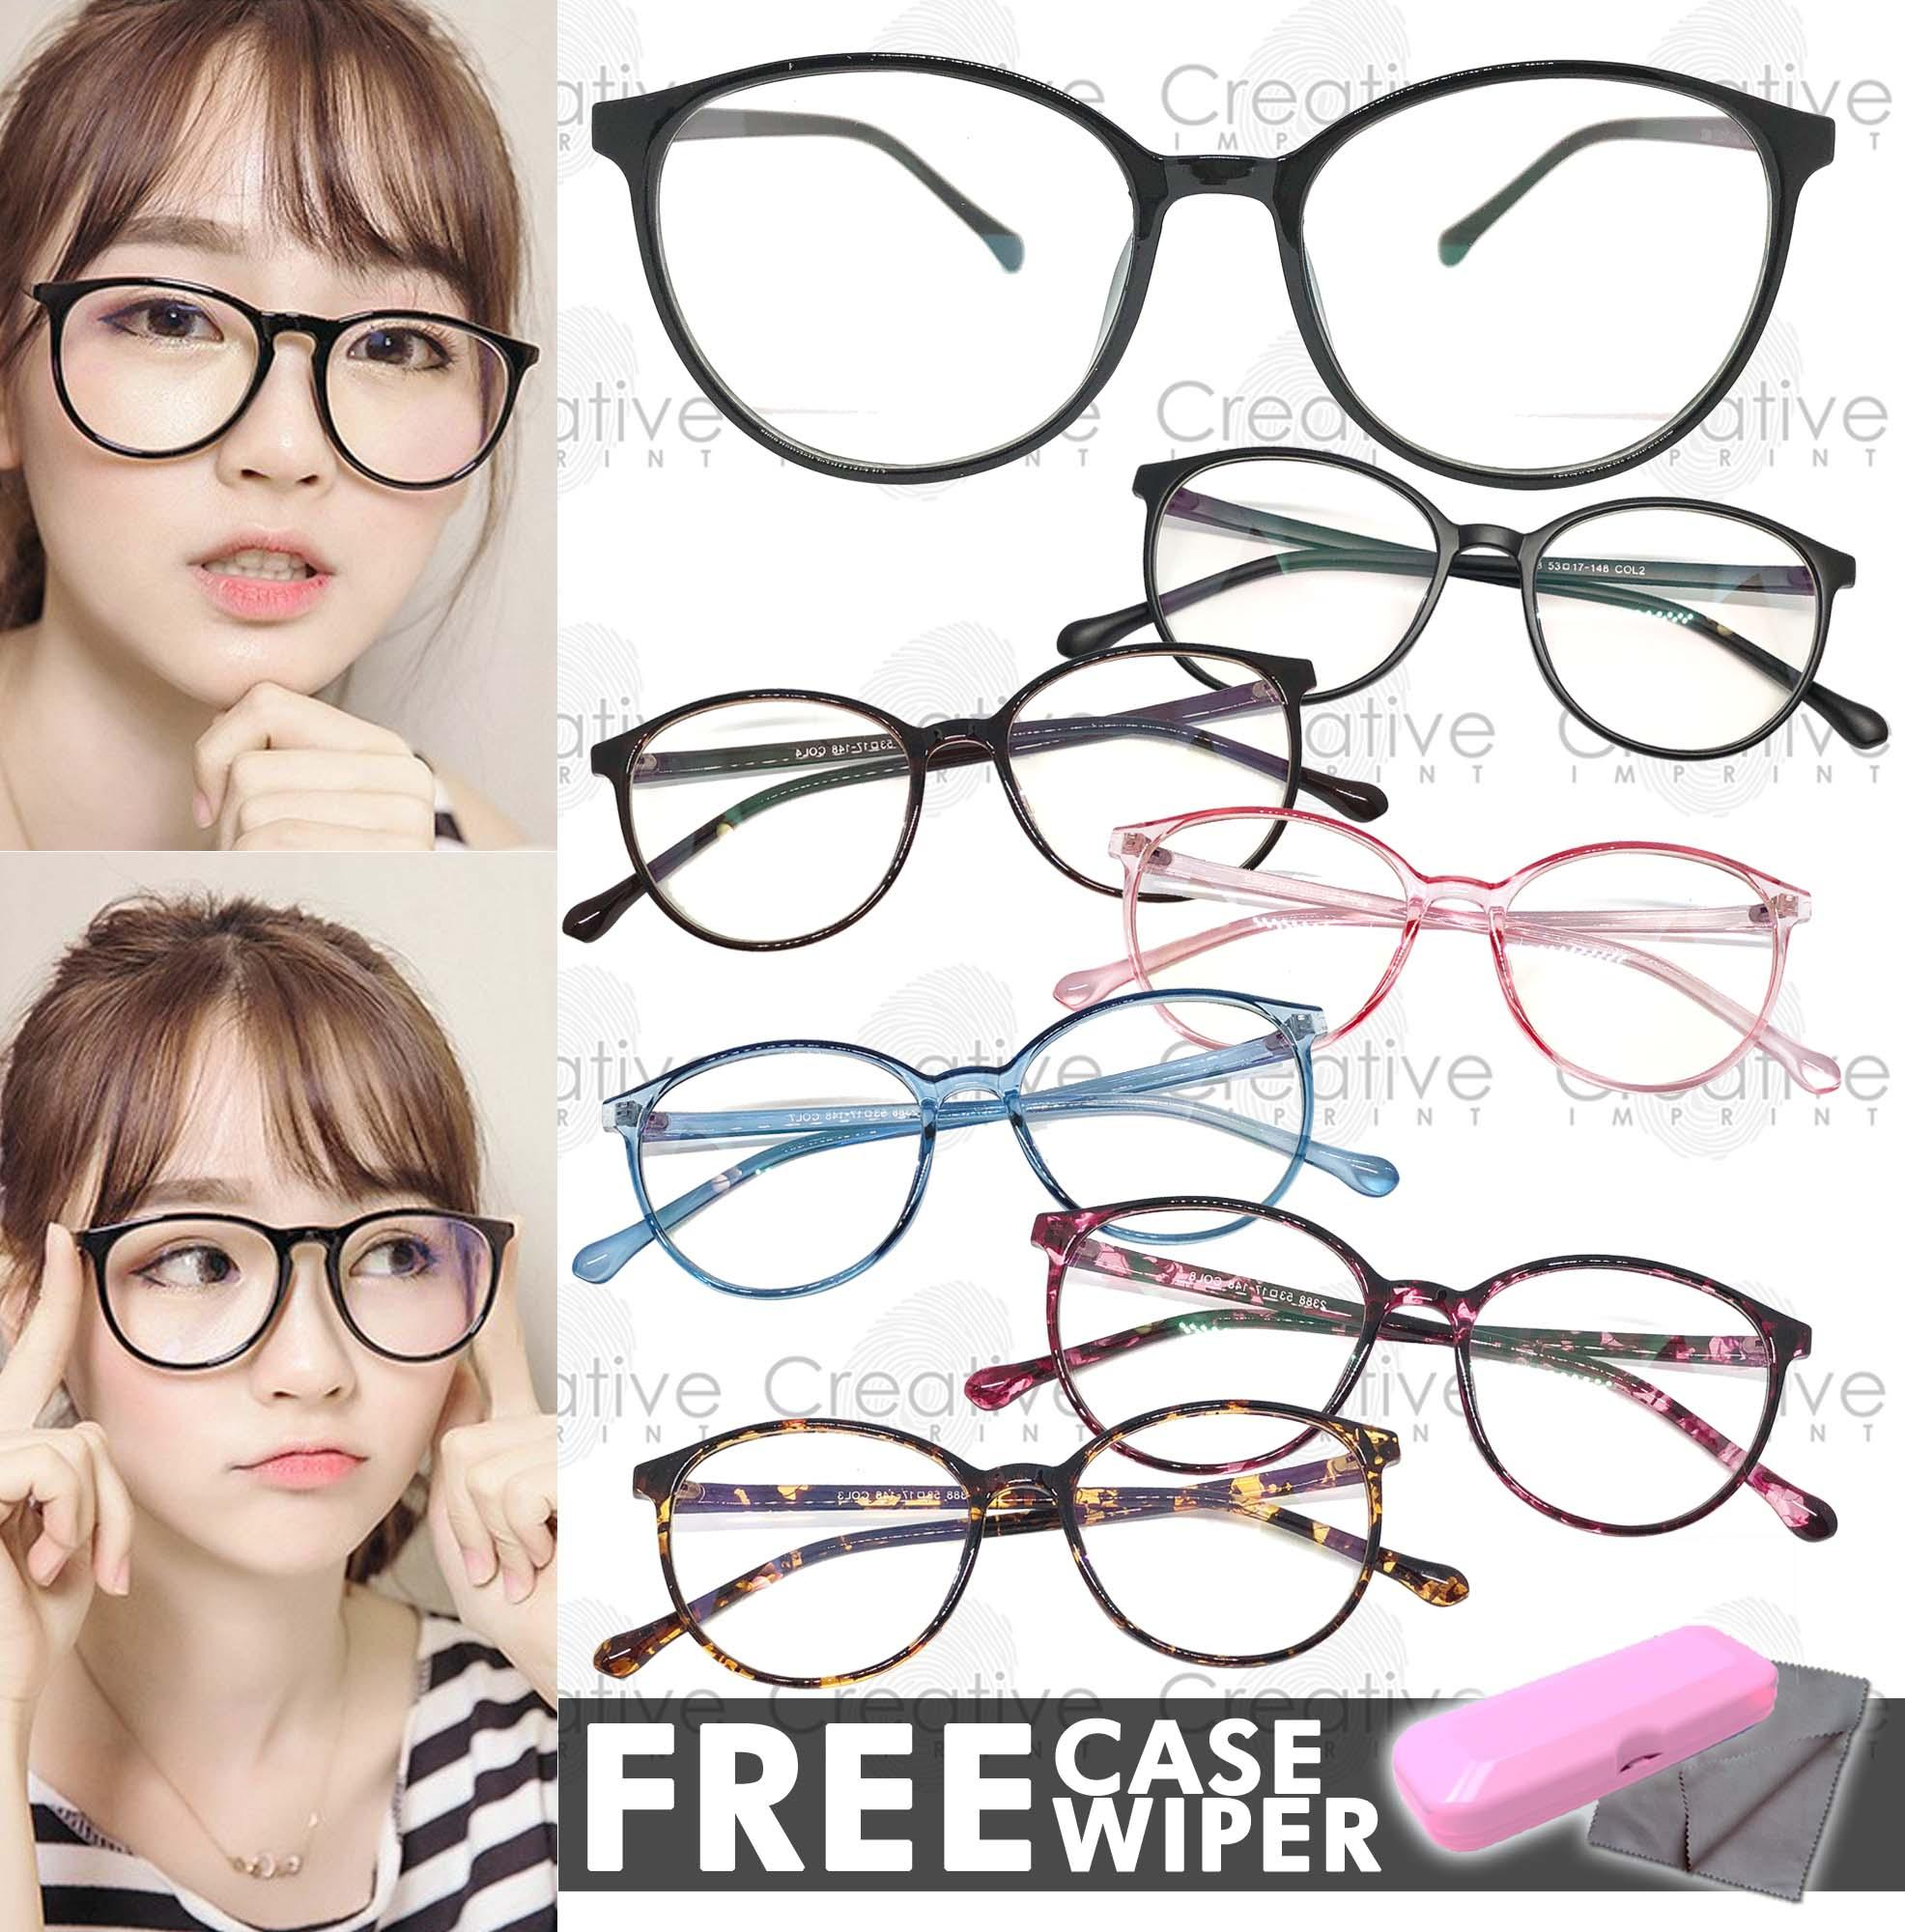 e5036d2bdea Creative Imprint Eyeglasses Anti-Radiation Lens Anti-Fatigue Anti-Blue  Light Flexible Computer